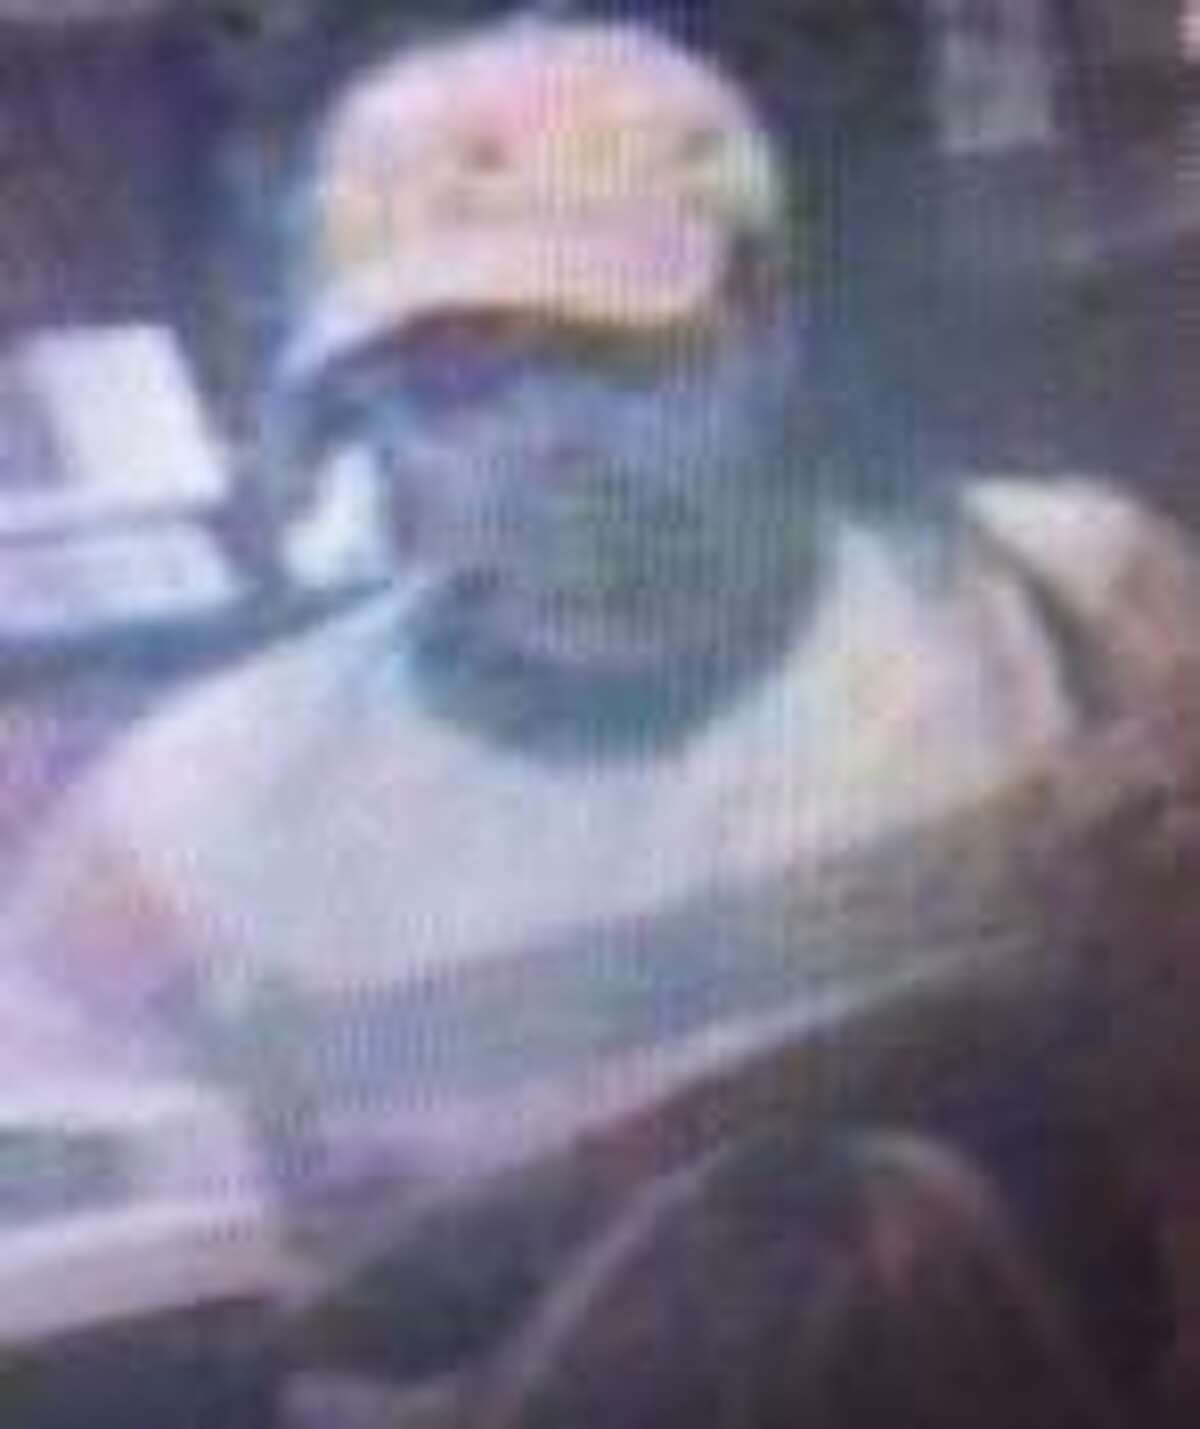 Police are searching for this suspect in connection with a robbery at the San Antonio Federal Credit Union at 7318 Louis Pasteur on March 9.